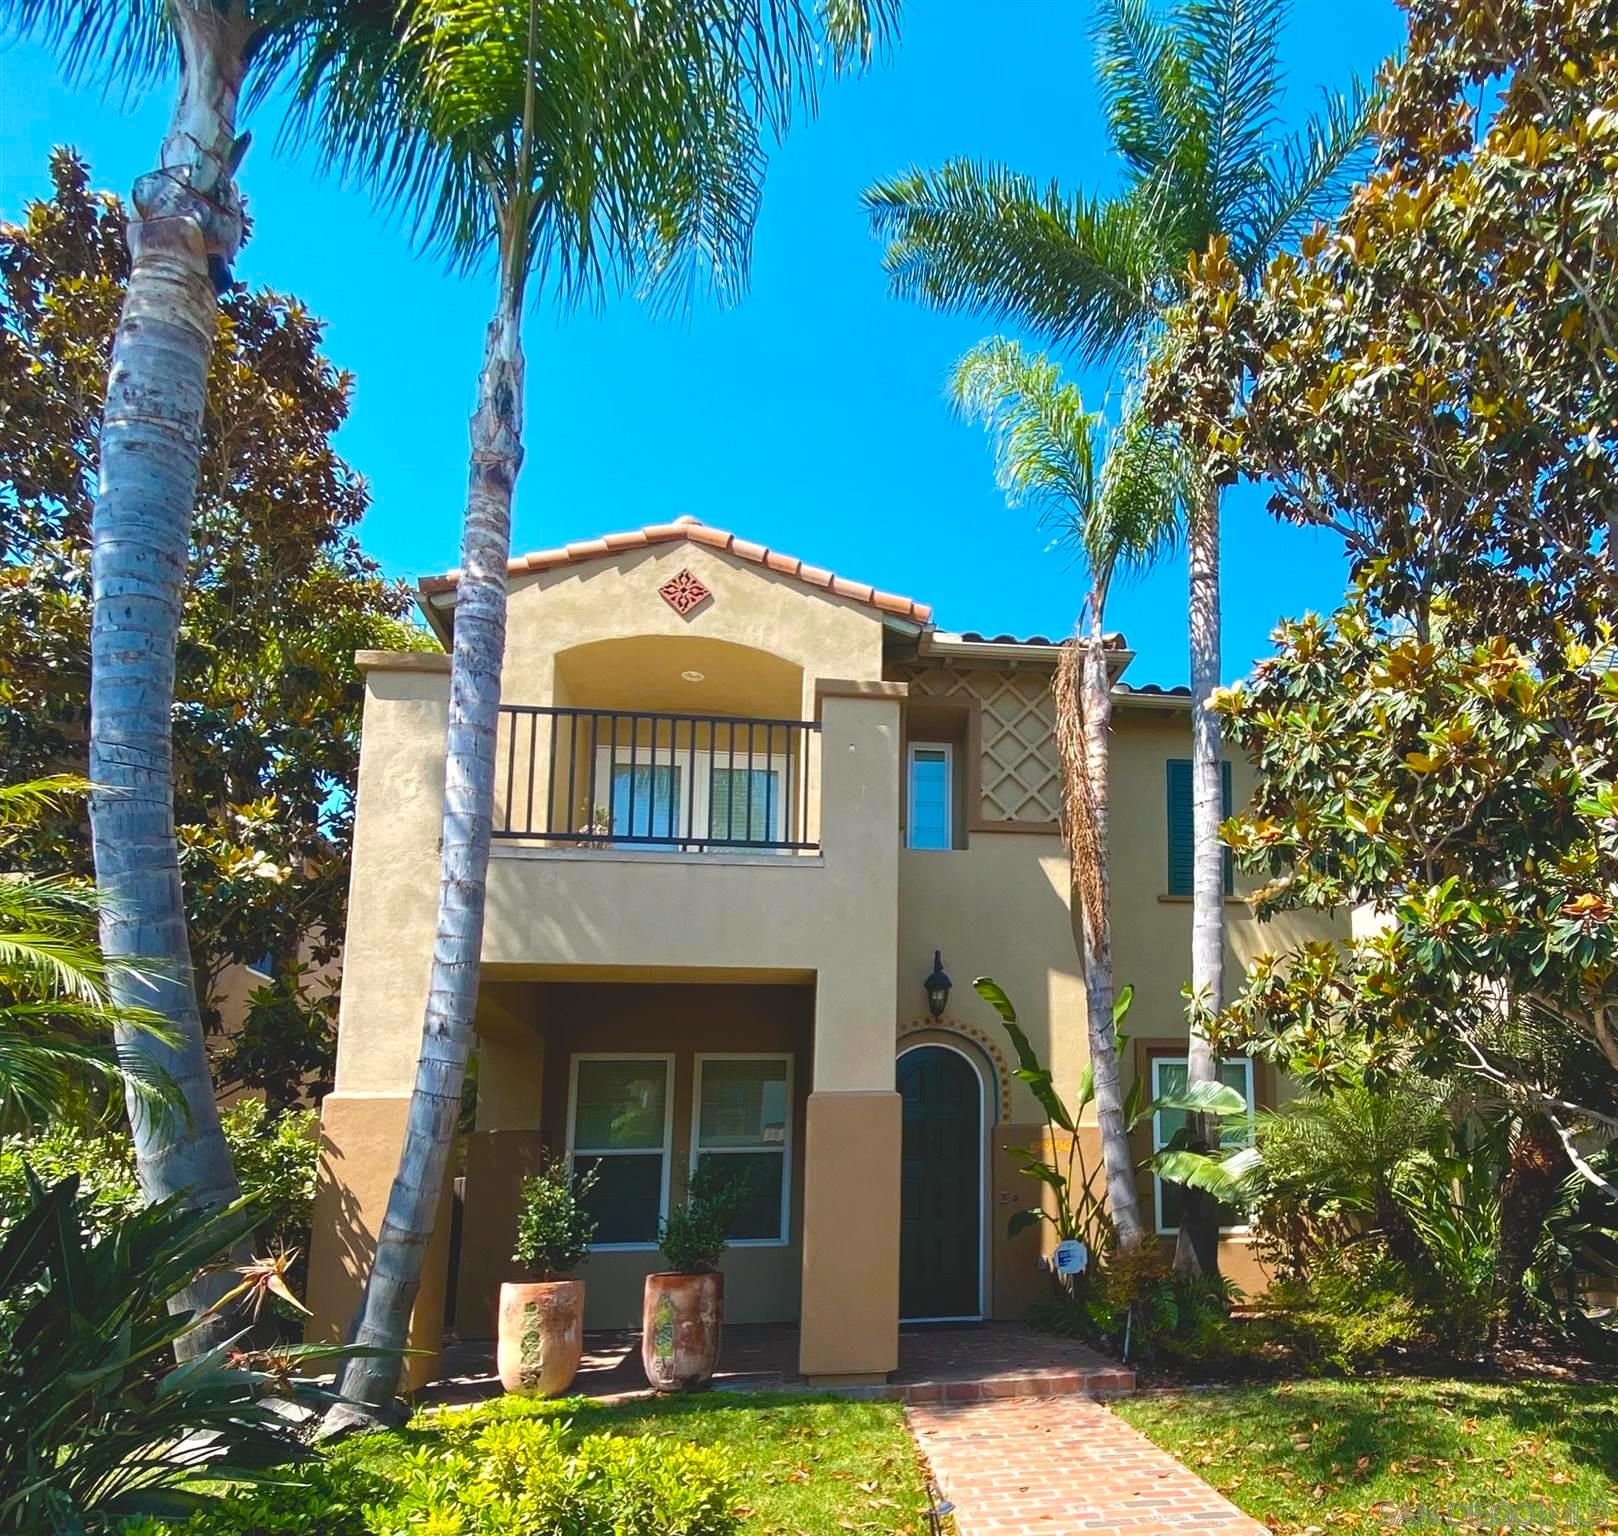 Main Photo: POINT LOMA House for sale : 3 bedrooms : 2939 W Bainbridge Rd in San Diego